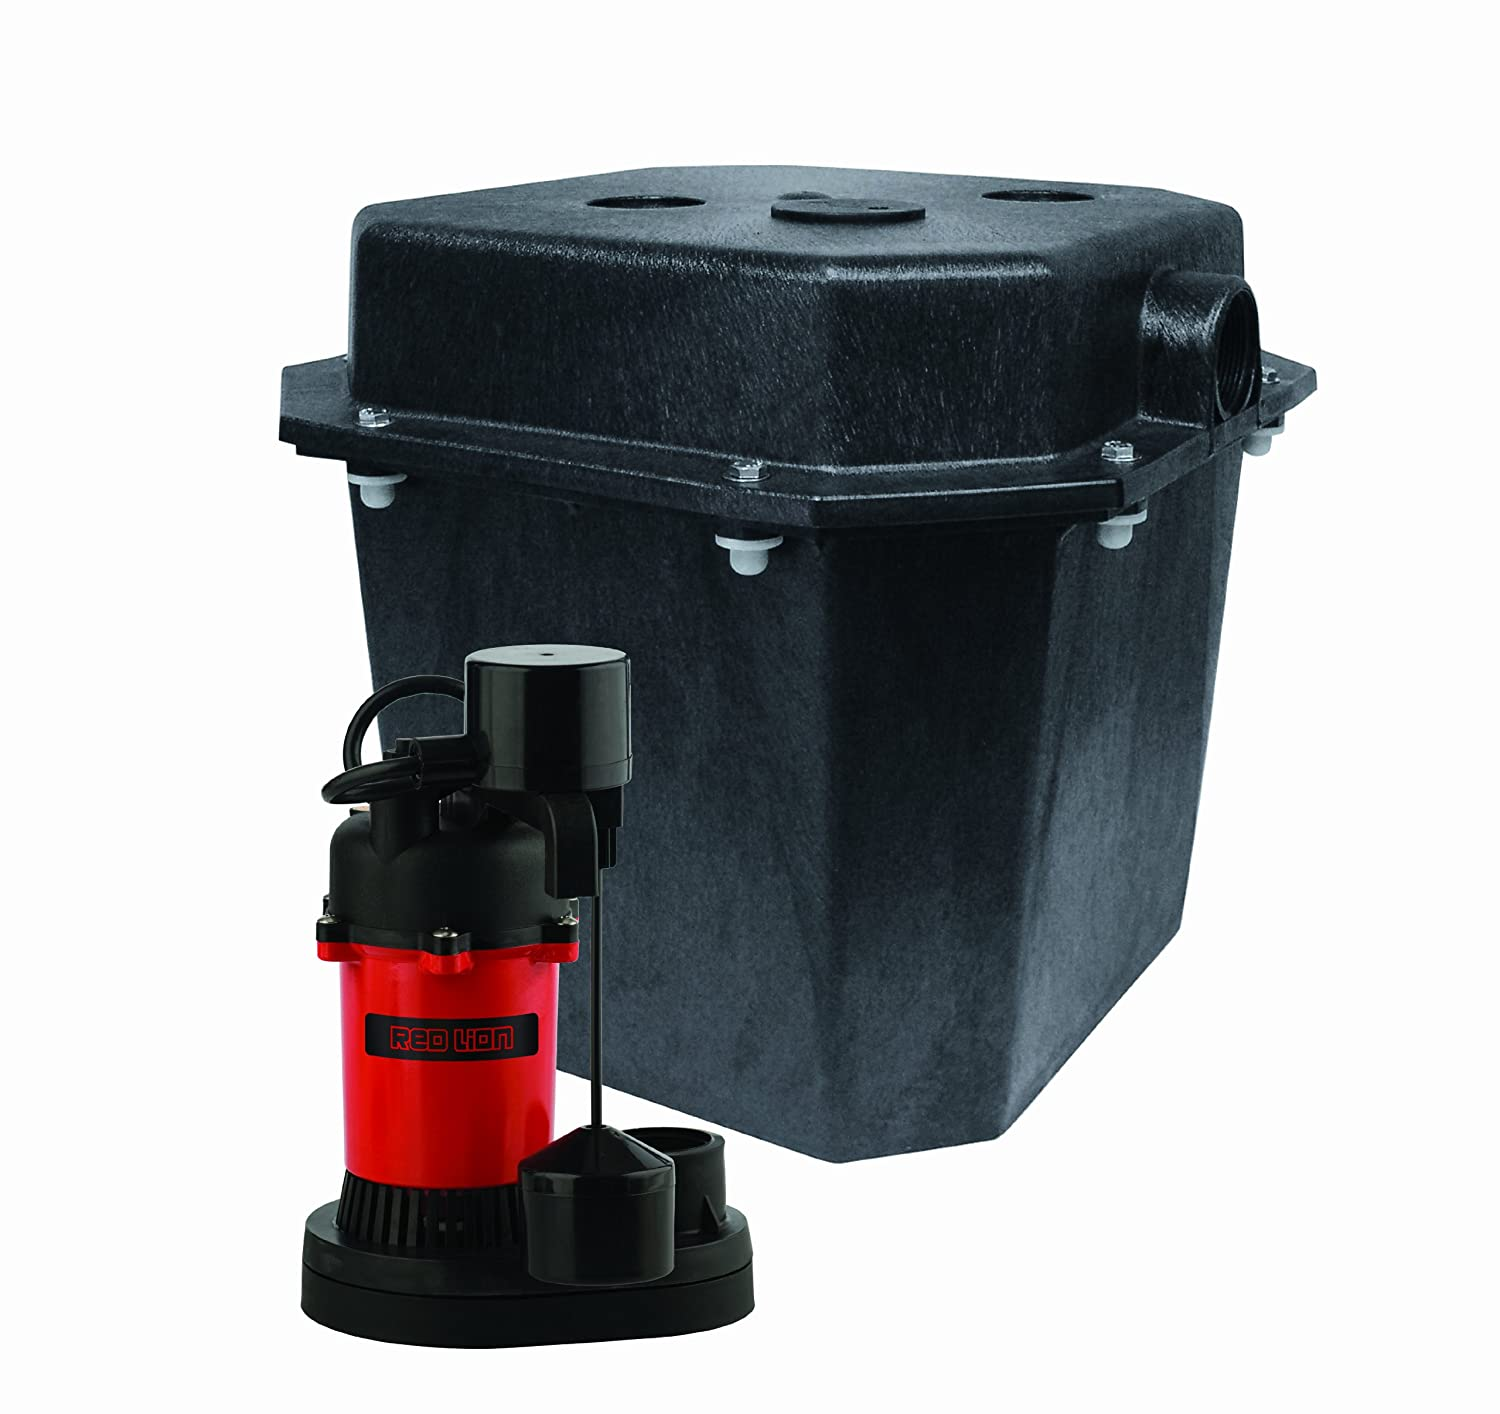 Red Lion RL-SPS33 1//4 HP Sump Pump Water Removal System with Vertical Float Switch and Five Gallon Basin Automatic Cast Iron Small Size Jet Heavy Duty Emergency Combination Multi Purpose Stainless Steel Submersible Thermoplastic Electric Wayne Zoeller